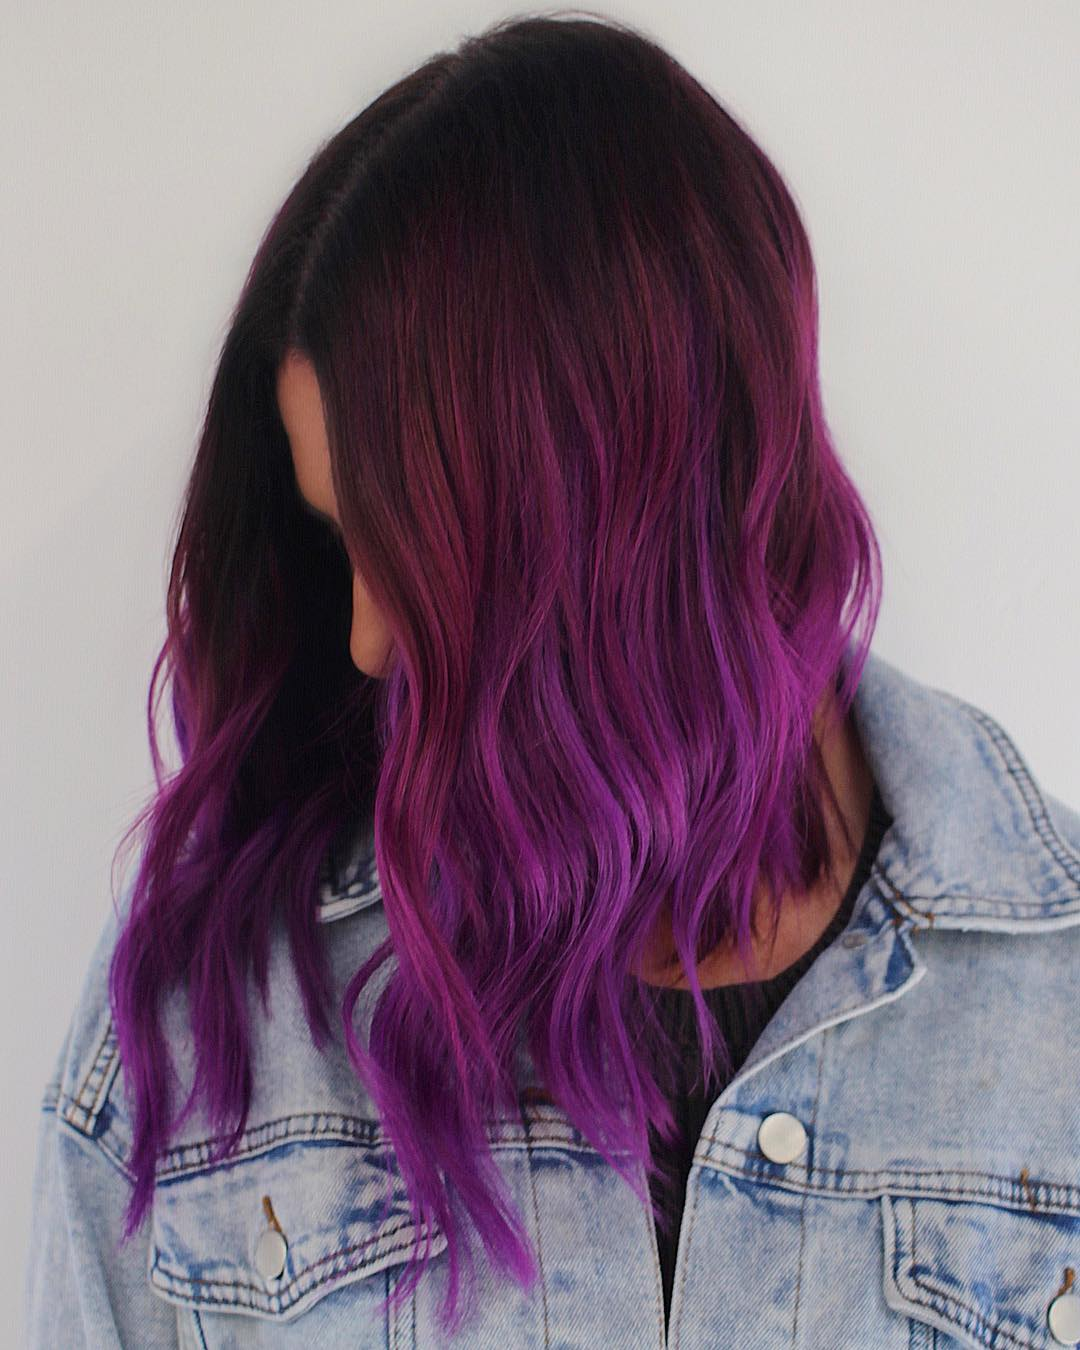 Red to dark purple ombre hair color